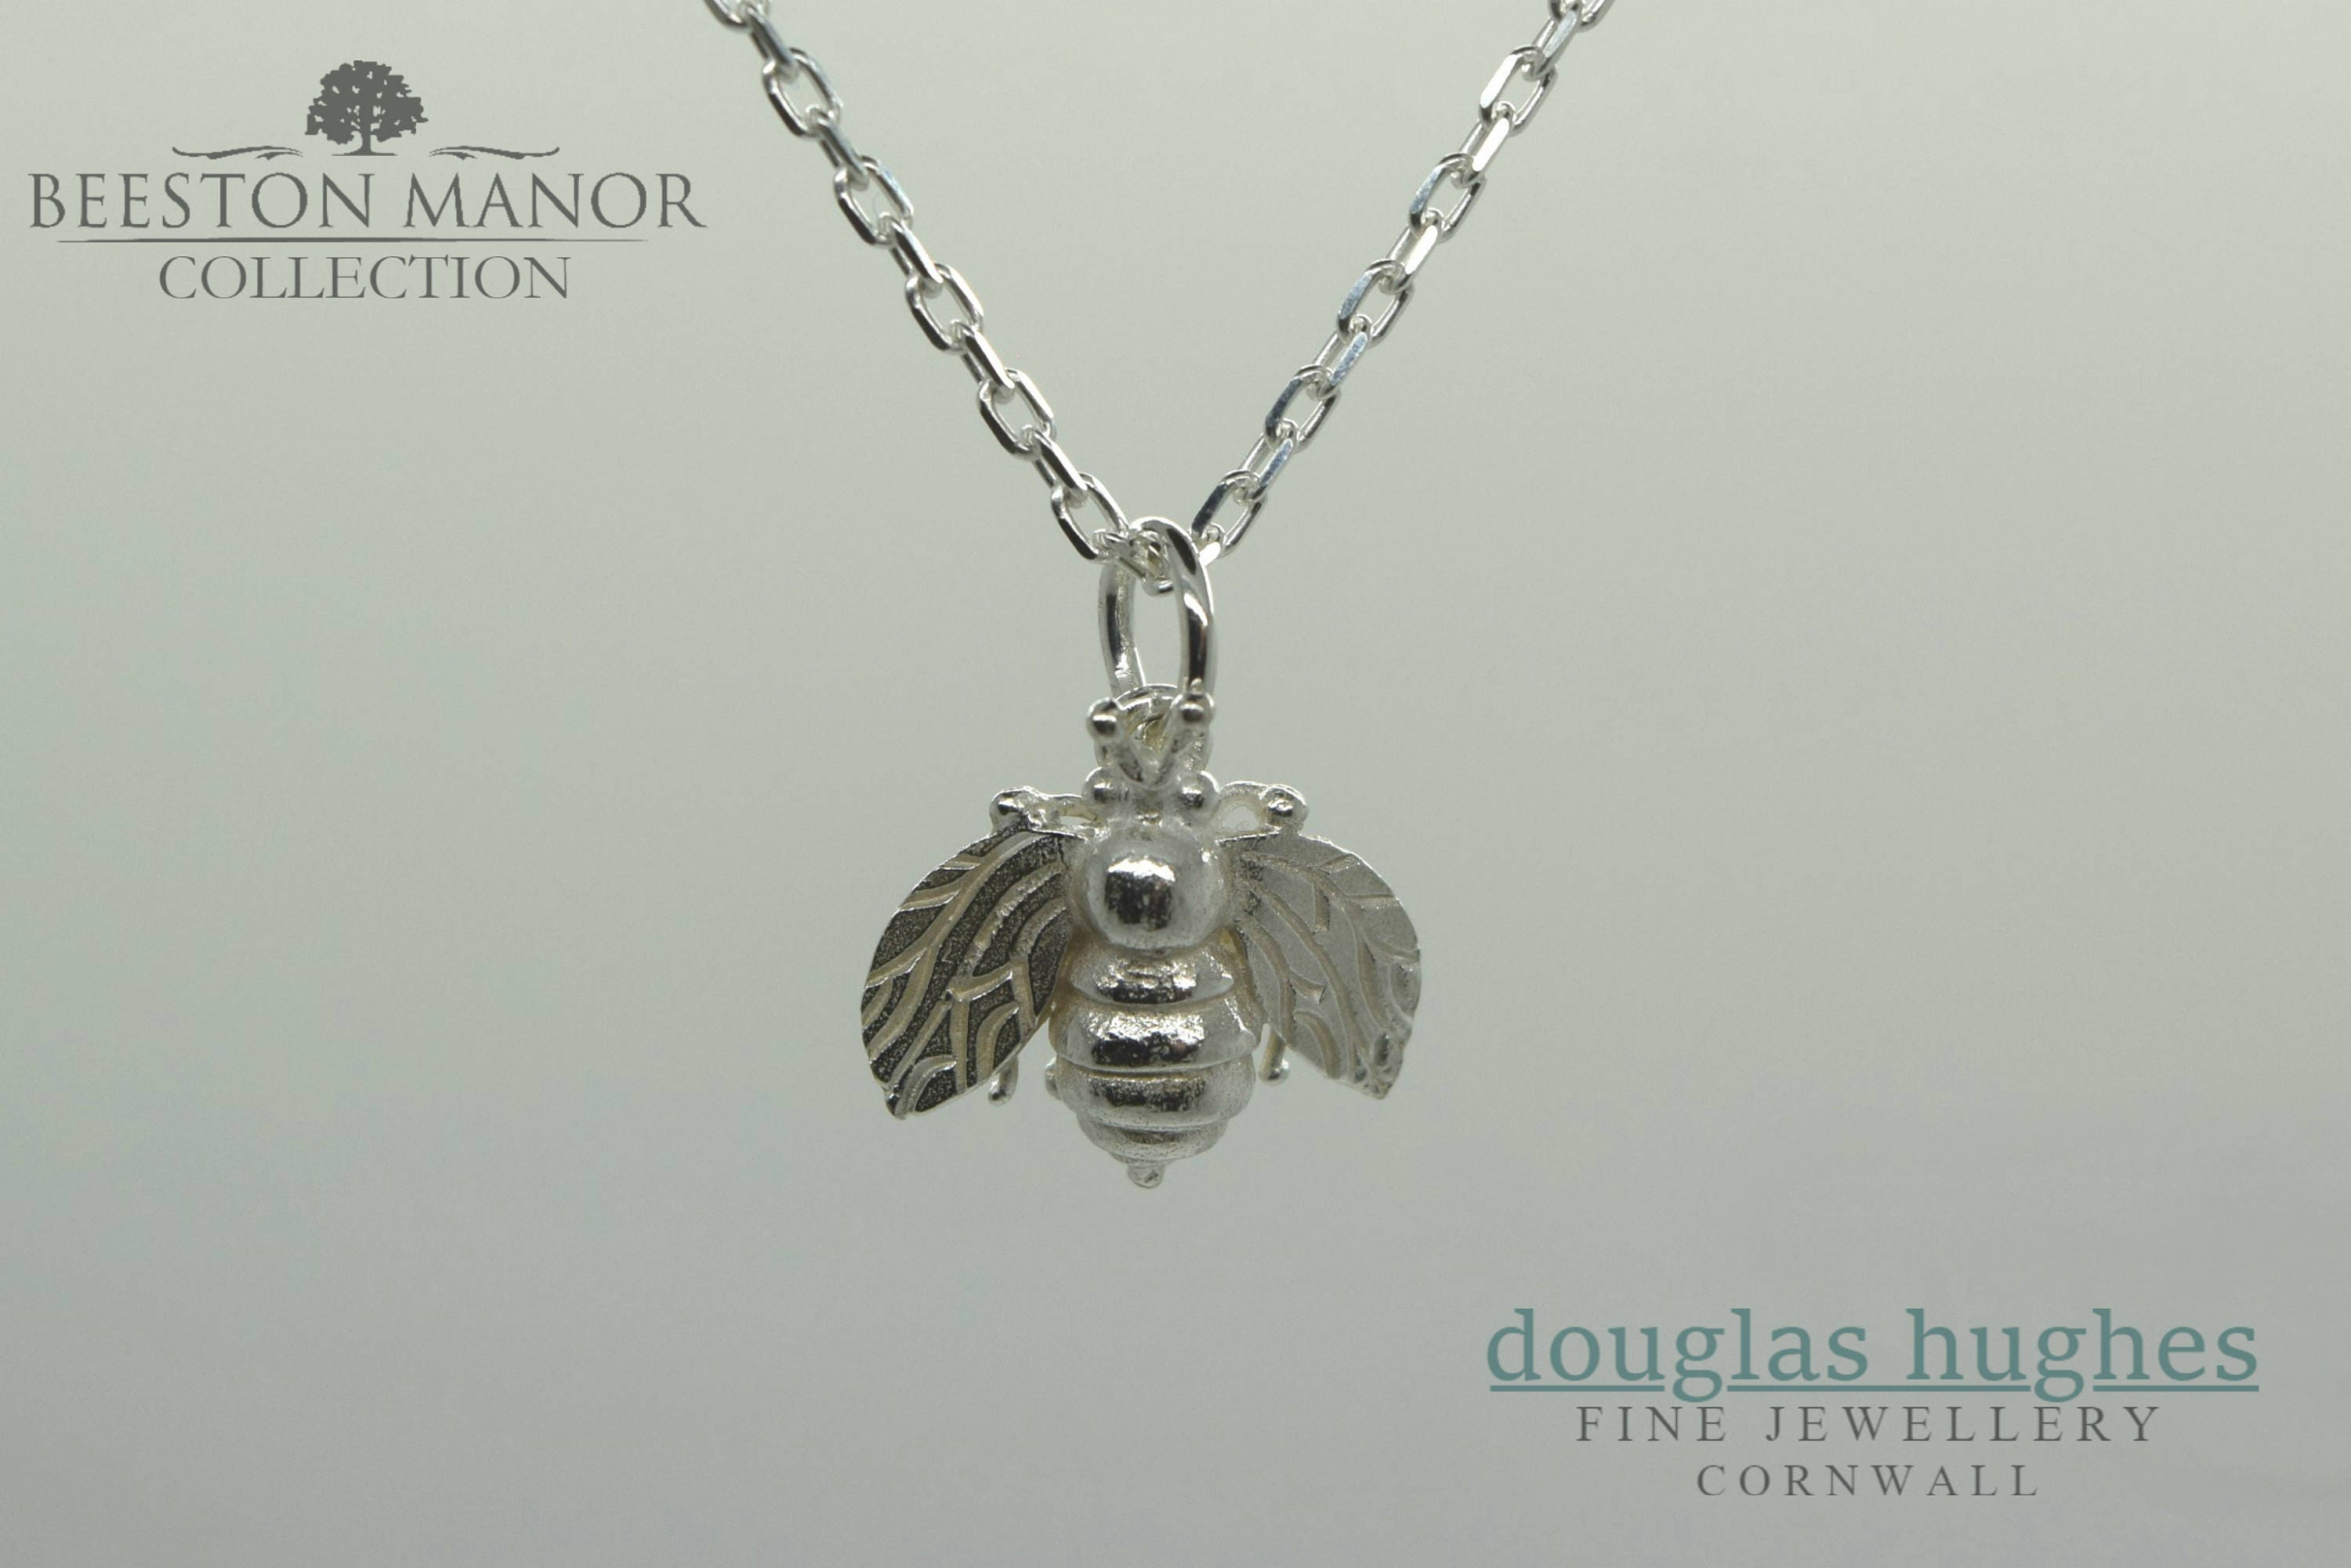 design always wanted necklace pendant silver bee i ornate oh honey product info large what